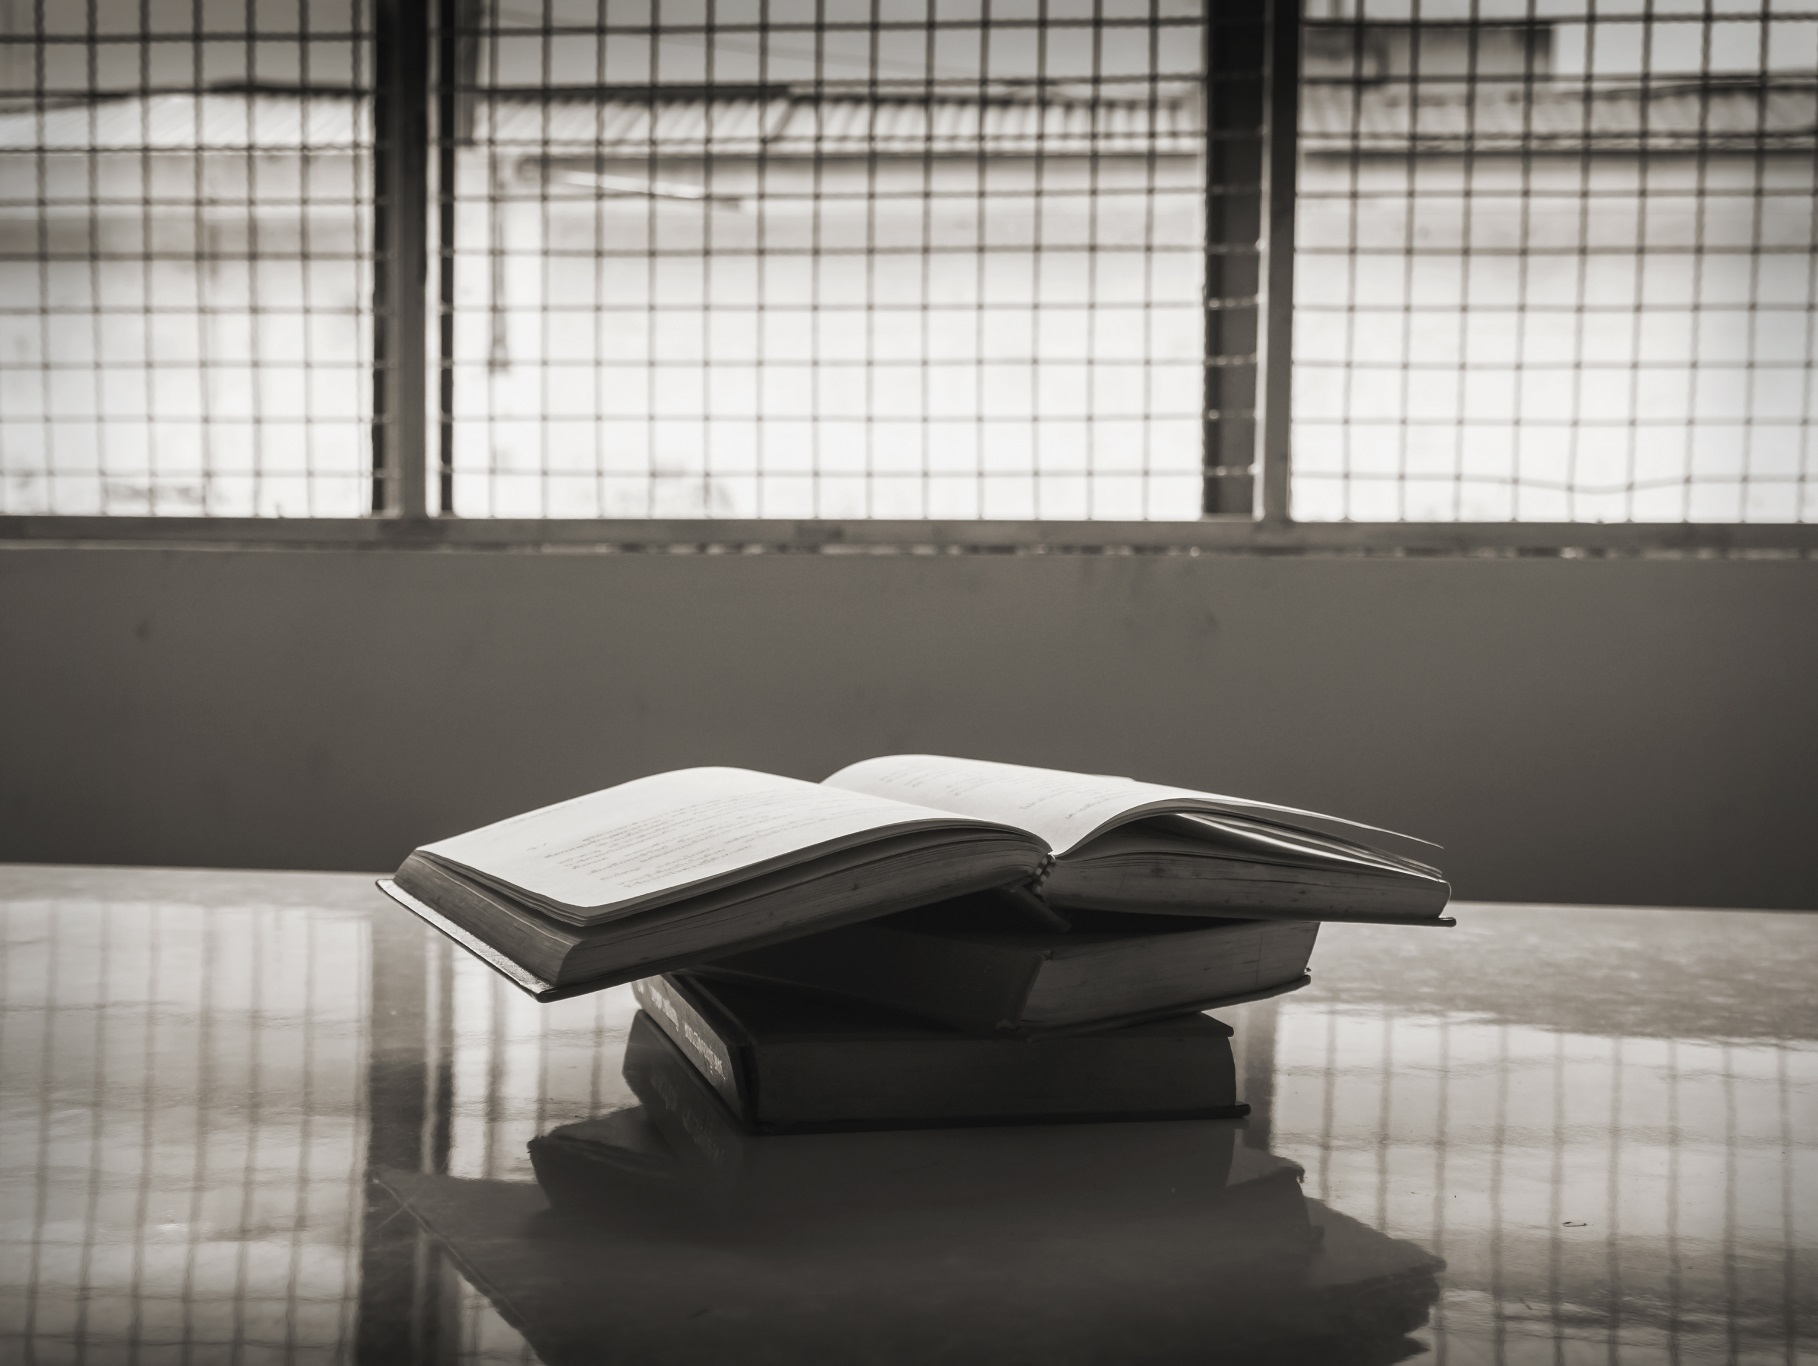 A photo of a pile of books on a table in a prison.